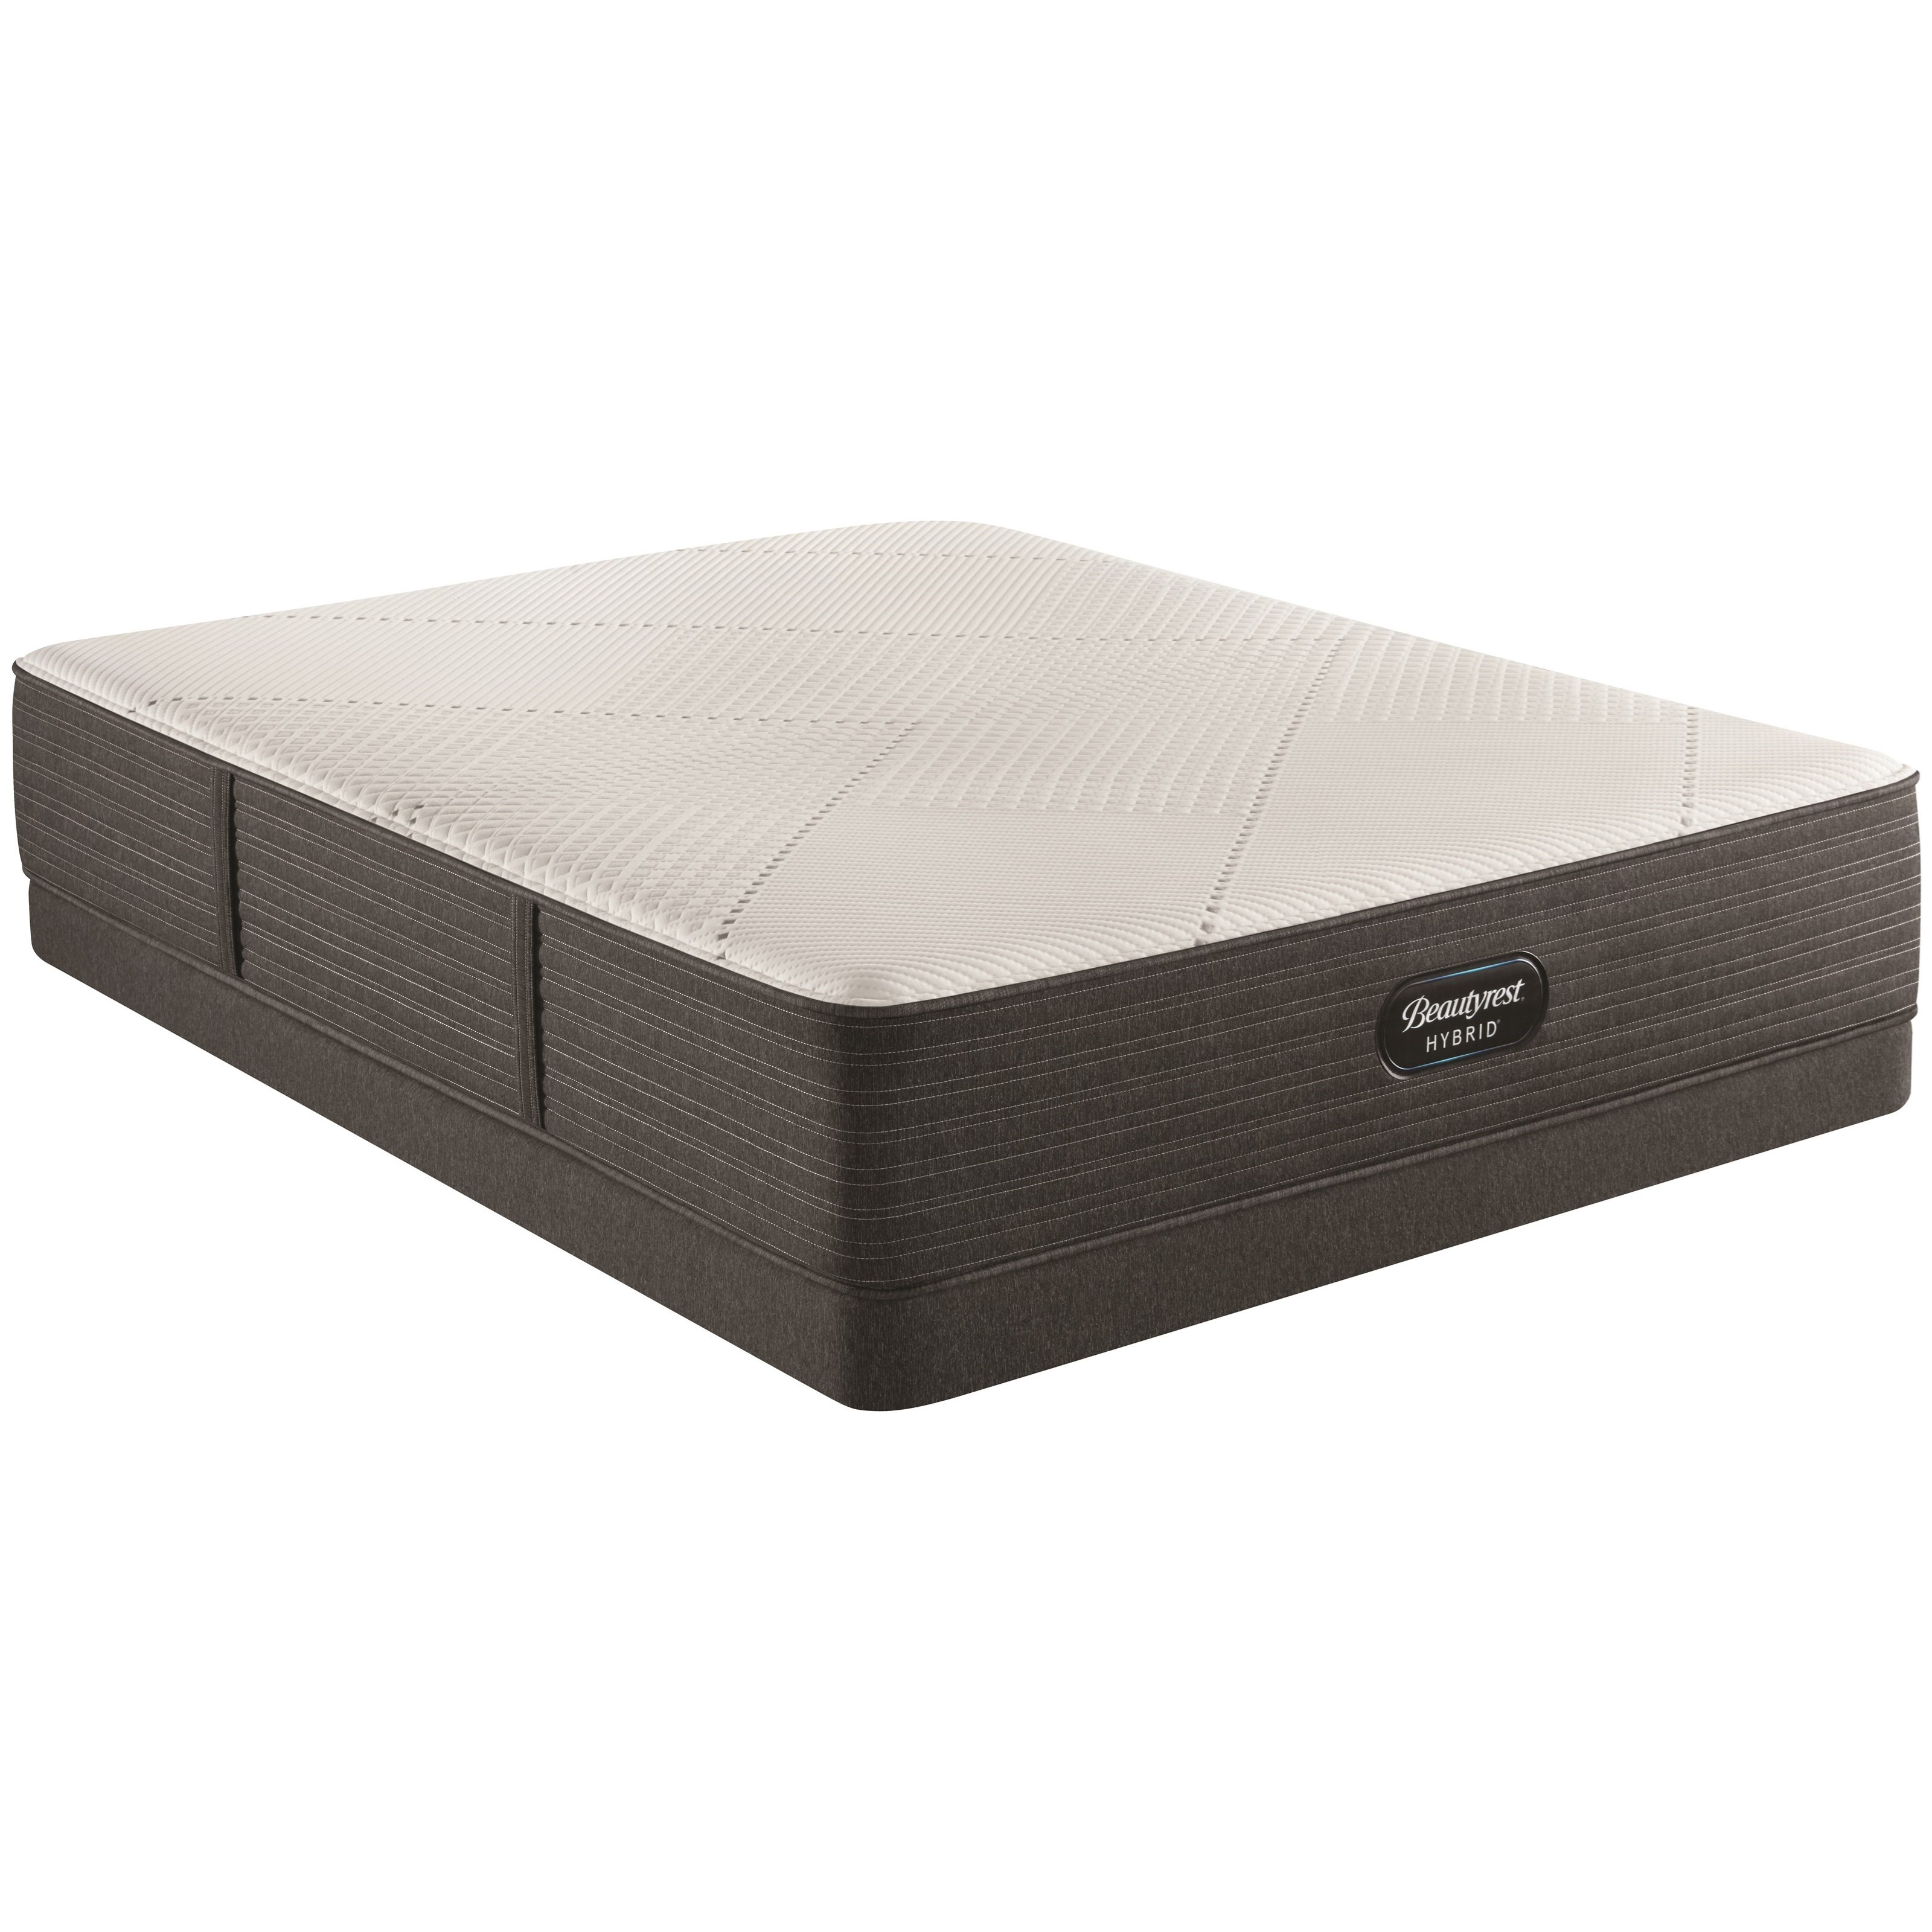 "BRX1000-IP Plush Hybrid Queen 13 1/2"" Hybrid Low Profile Set by Beautyrest at SlumberWorld"